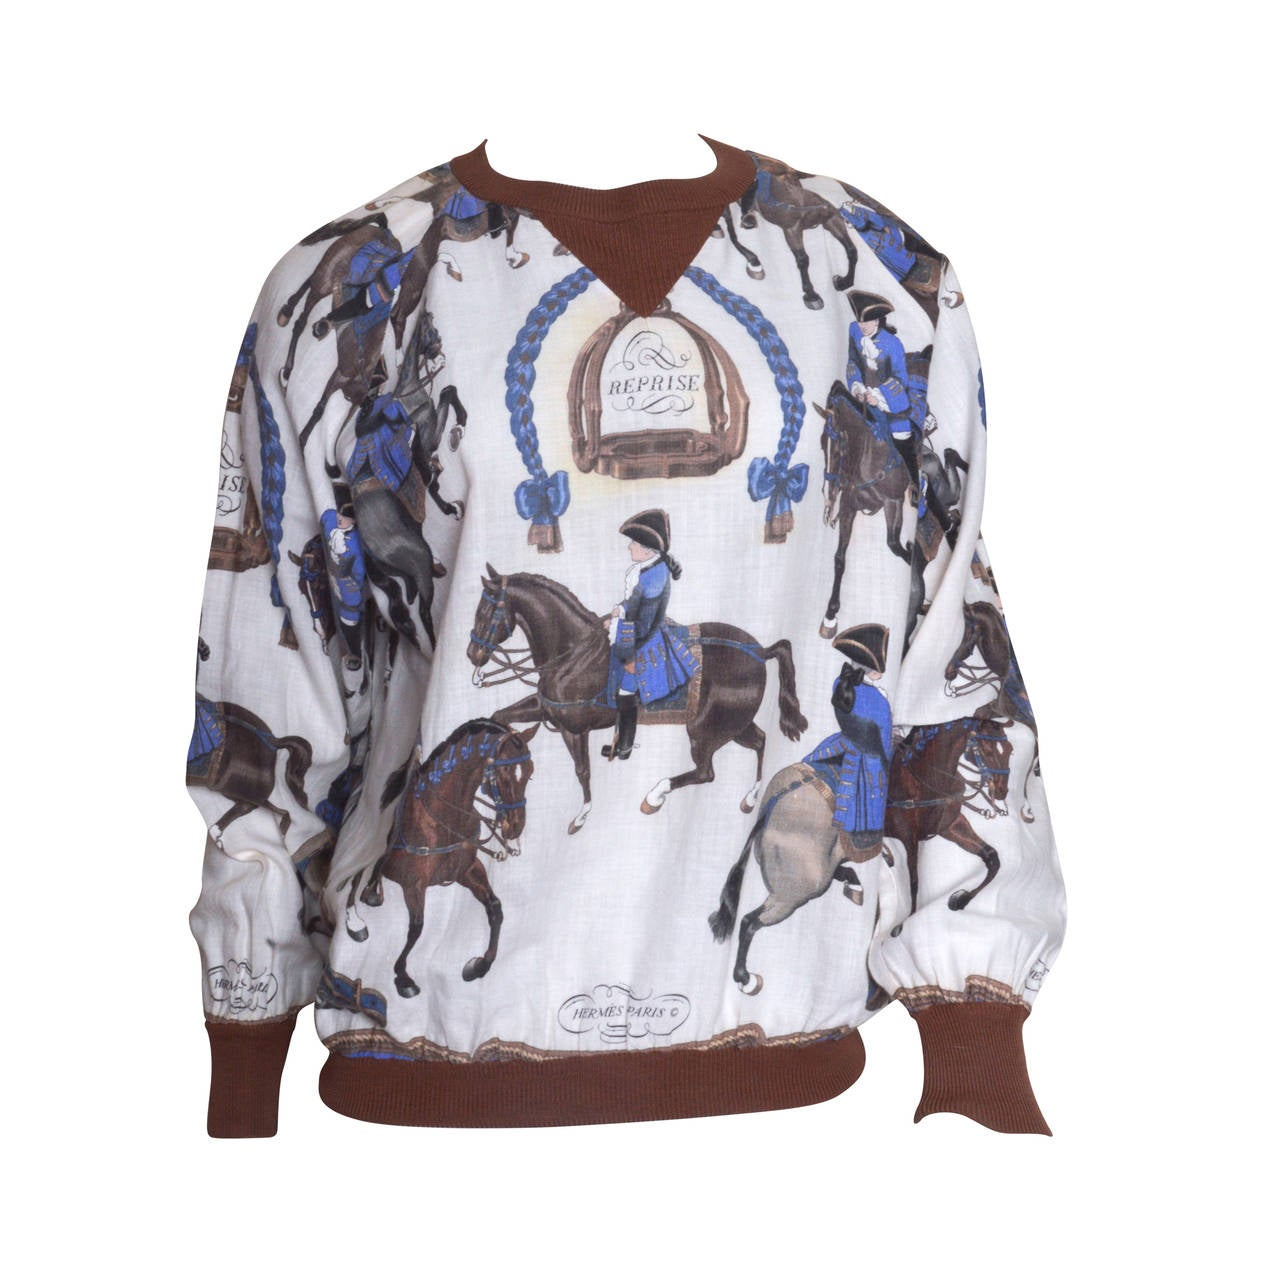 Hermes Equestrian Scarf Print Blouse